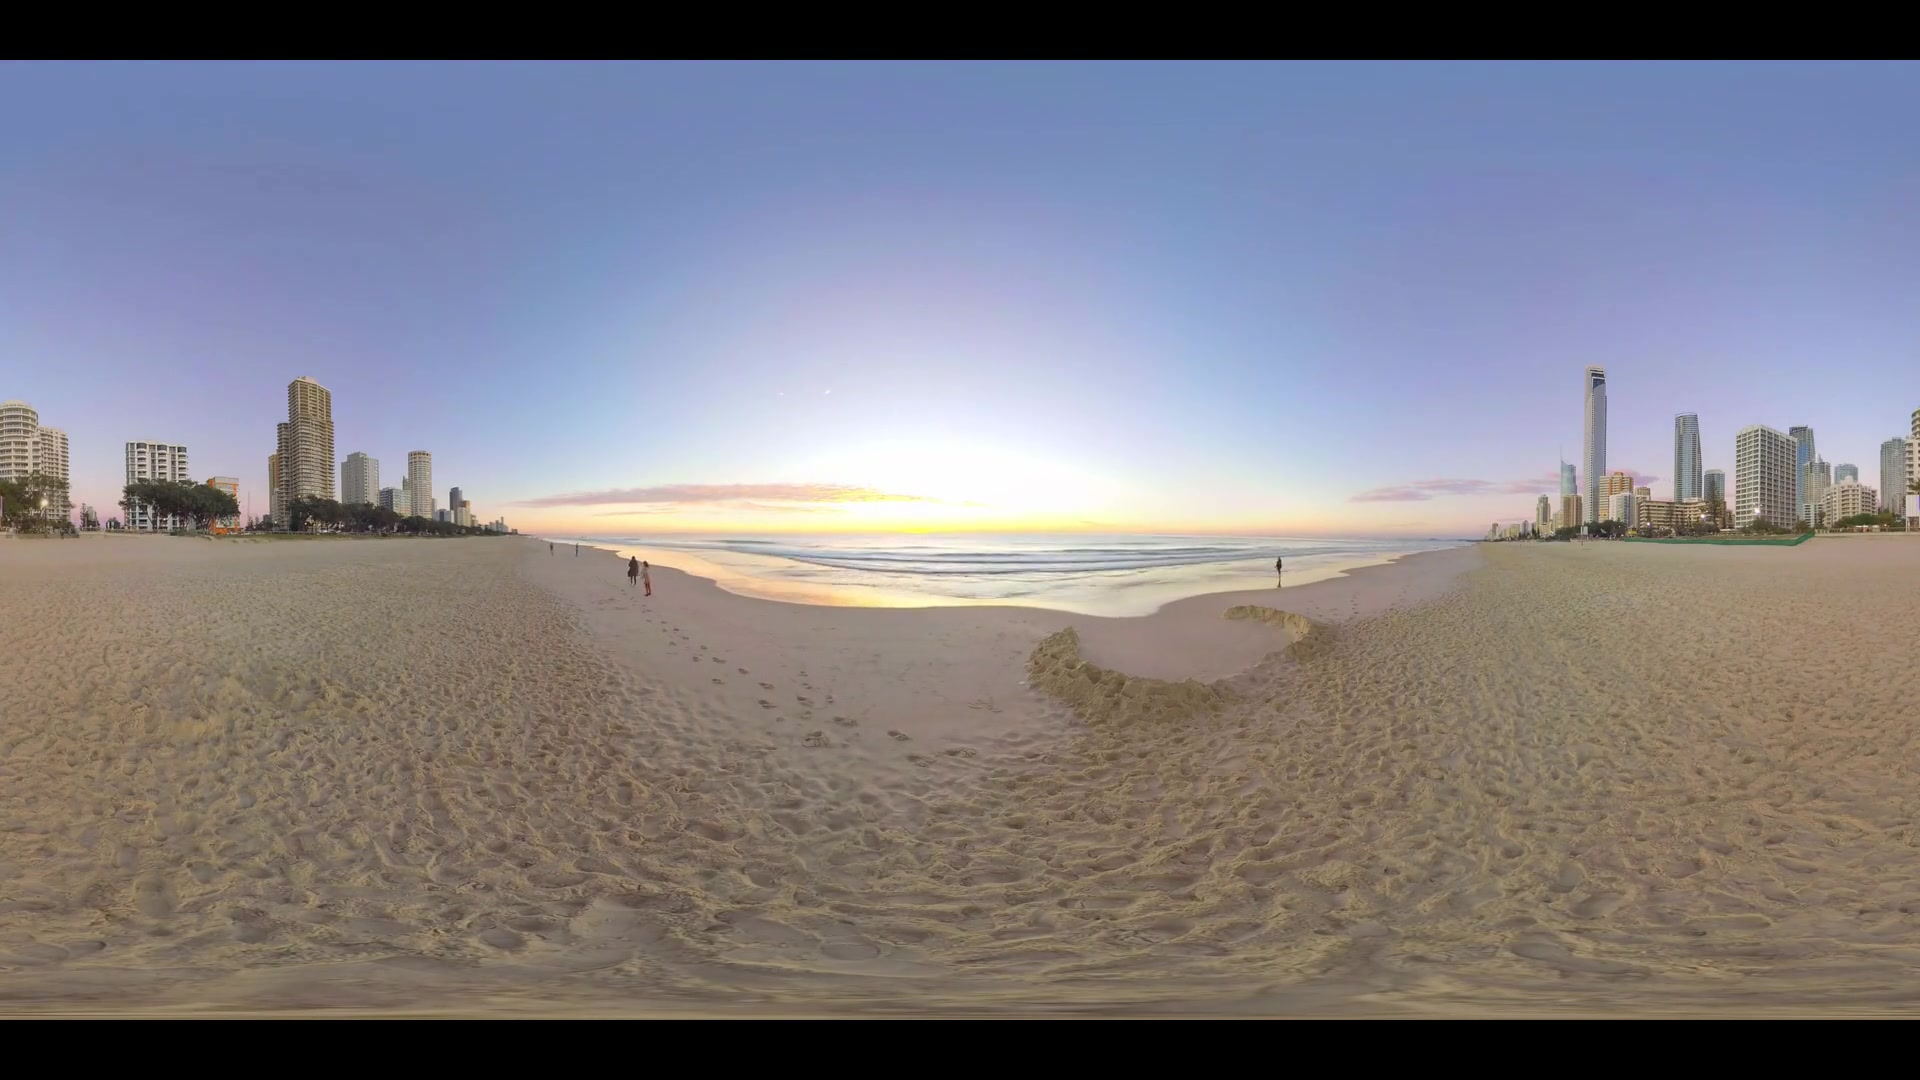 Gold Coast Beach Sunset 360 VR Timelapse